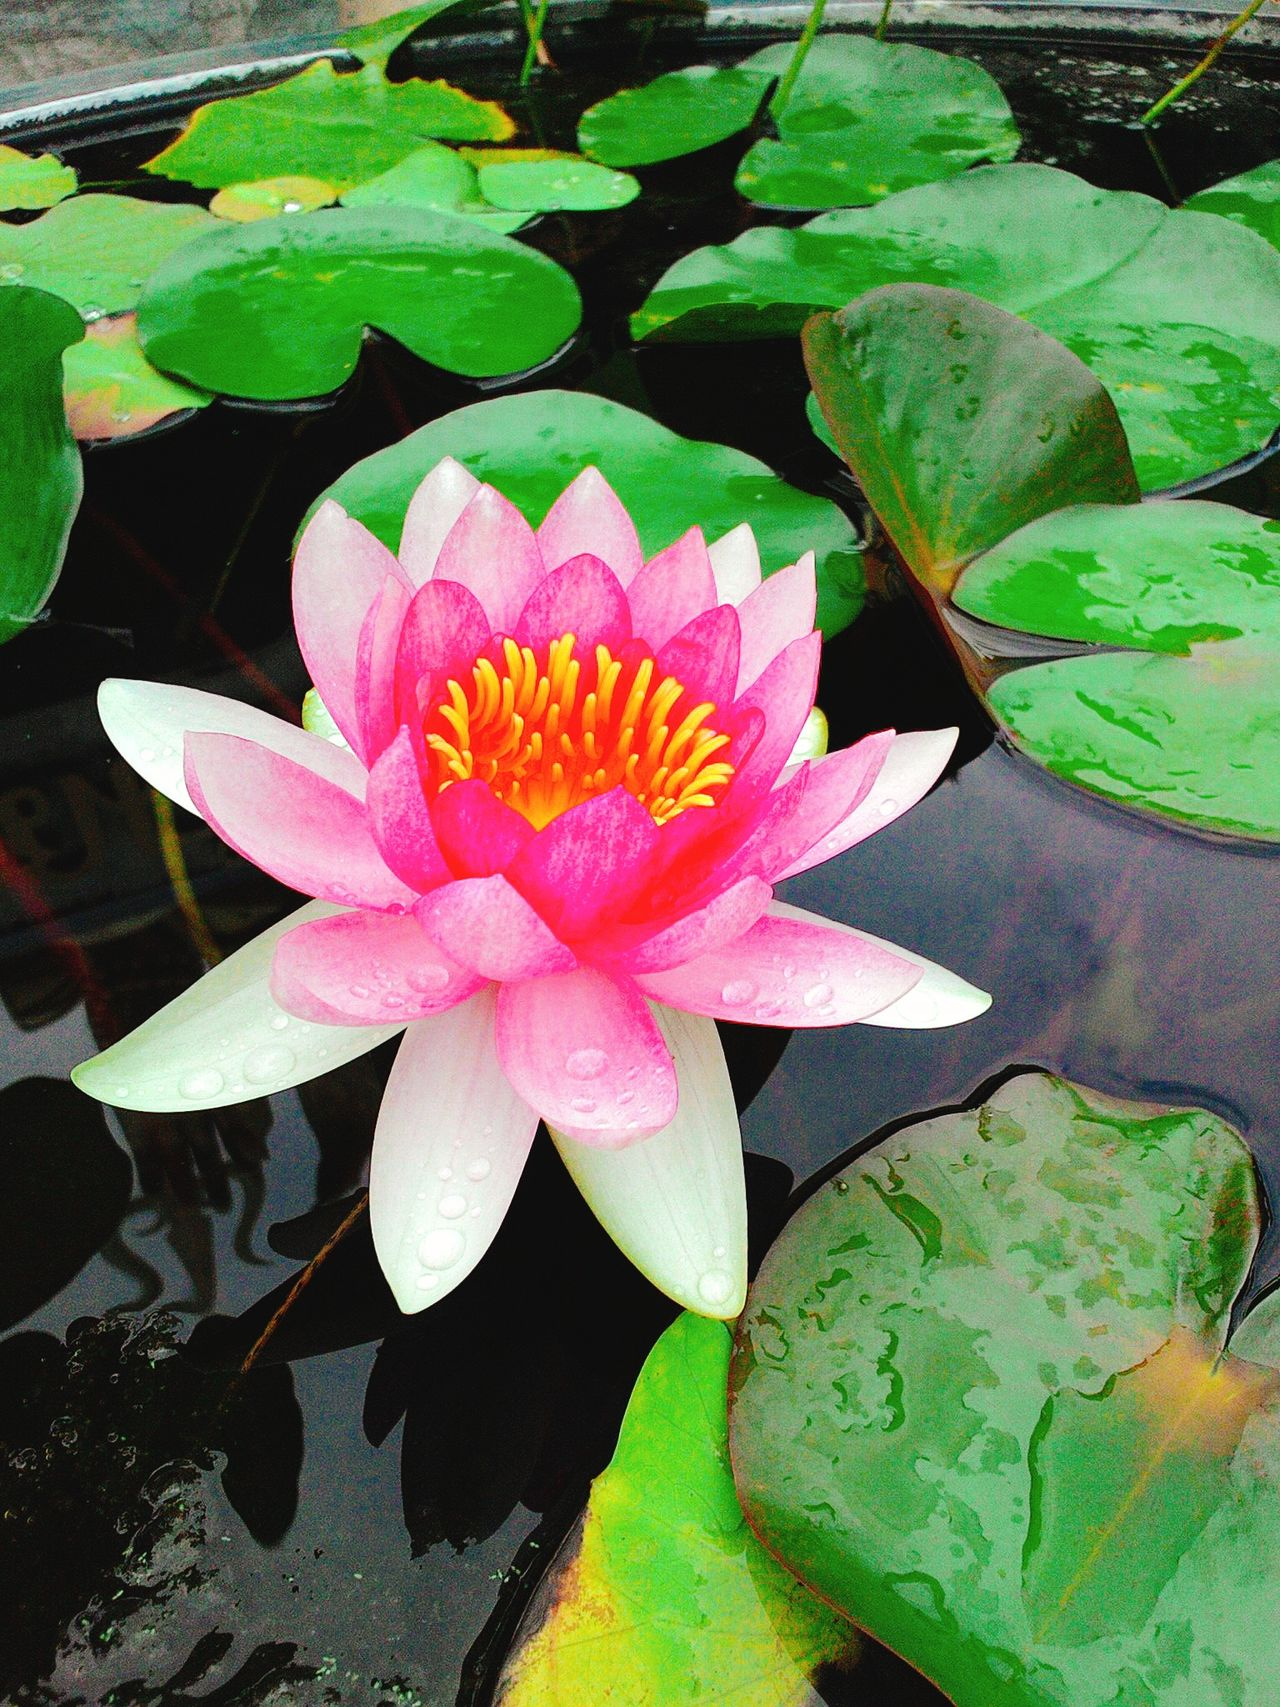 Close-up Flower Lotus Lotus Flowers Lotus Leaf Lotus Leaf With Raindrop Lotus Water Lily Pink Lotus Pink Lotus Flower Purple Lotus Purple Lotus Flower Water Lily Water Lily Flower Water Lily Leaf